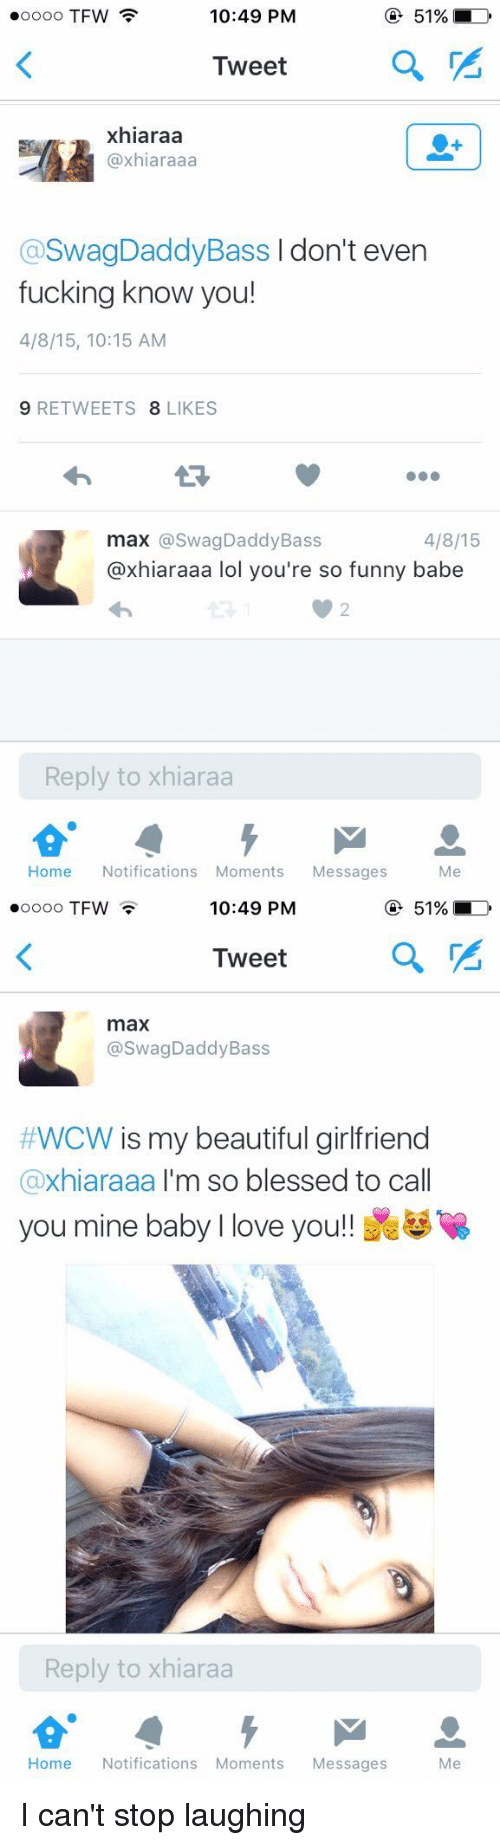 Your So Funny: 10:49 PM  ooooo TFW  51%  Tweet  a  xhiaraa  (axhiaraaa  aswagDaddyBass don't even  fucking know you!  4/8/15, 10:15 AM  9 RETWEETS  8 LIKES  4/8/15  max @Swag Daddy Bass  @xhiaraaa lol you're so funny babe  Reply to xhiaraa  Home  Notifications Moments  Messages  Me   10:49 PM  51%  OOOOO TFW  Tweet  a  max  @Swag Daddy Bass  #WCW s my beautiful girlfriend  axhiaraaa I'm so blessed to ca  you mine baby l love you  Reply to xhiaraa  Home  Notifications Moments  Messages  Me I can't stop laughing